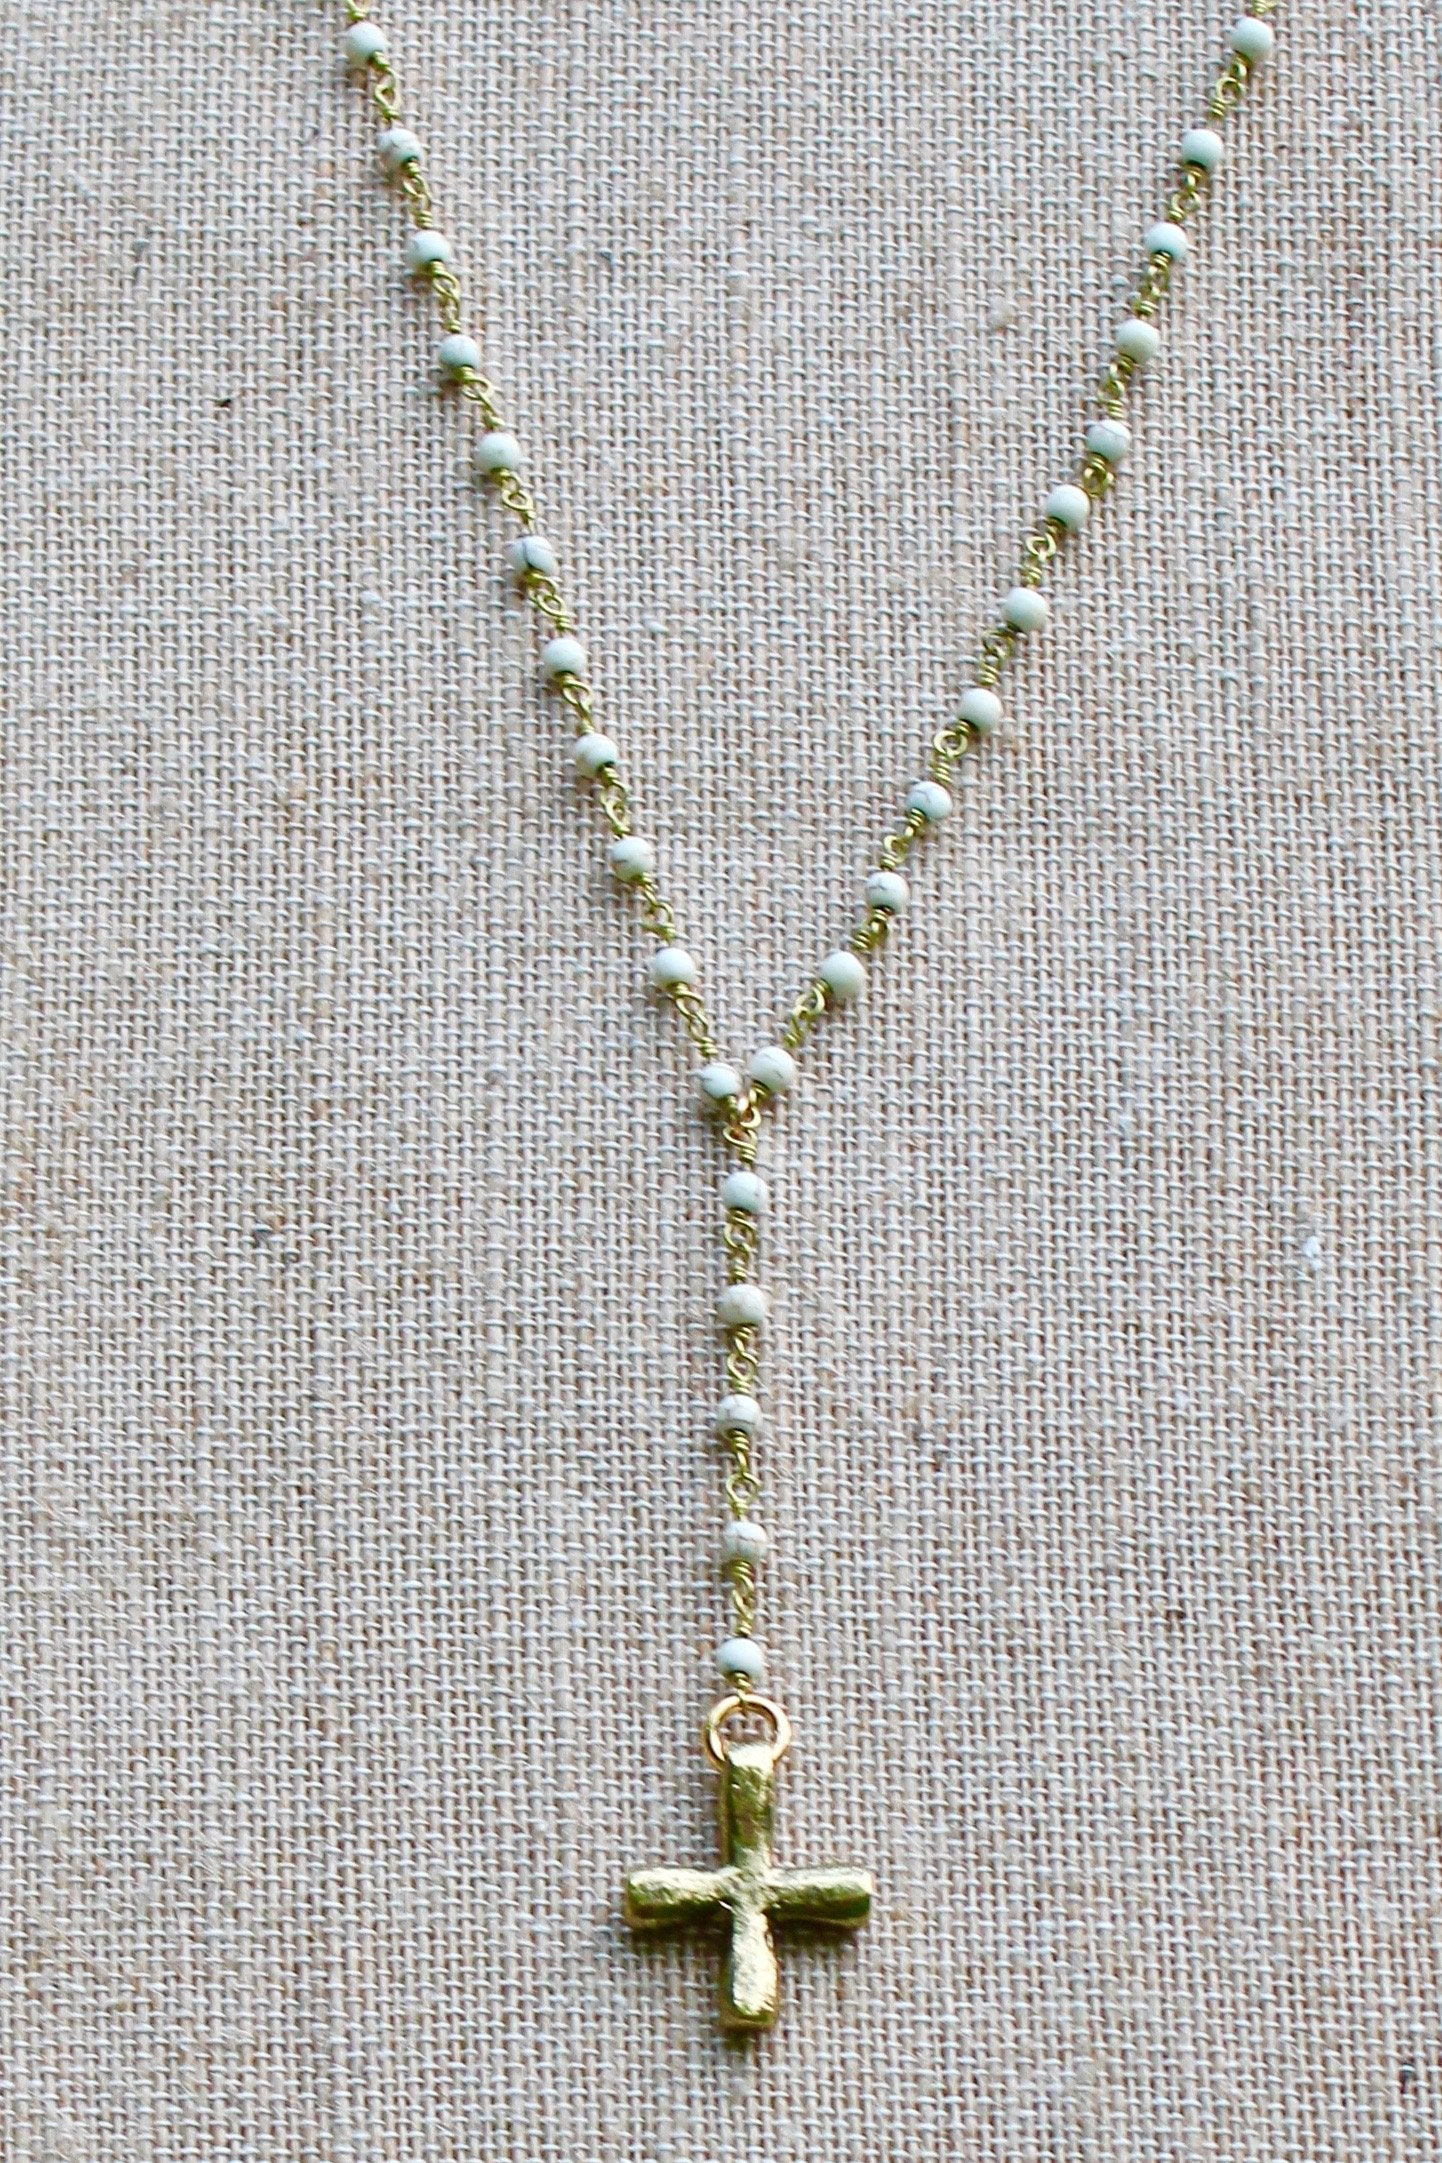 N142GW; Thick Hammered Goldtone Cross; 3mm Goldtone White Stone Chain; Approximately 16 inches with 3 inches Drop; ; ; ; Majestees